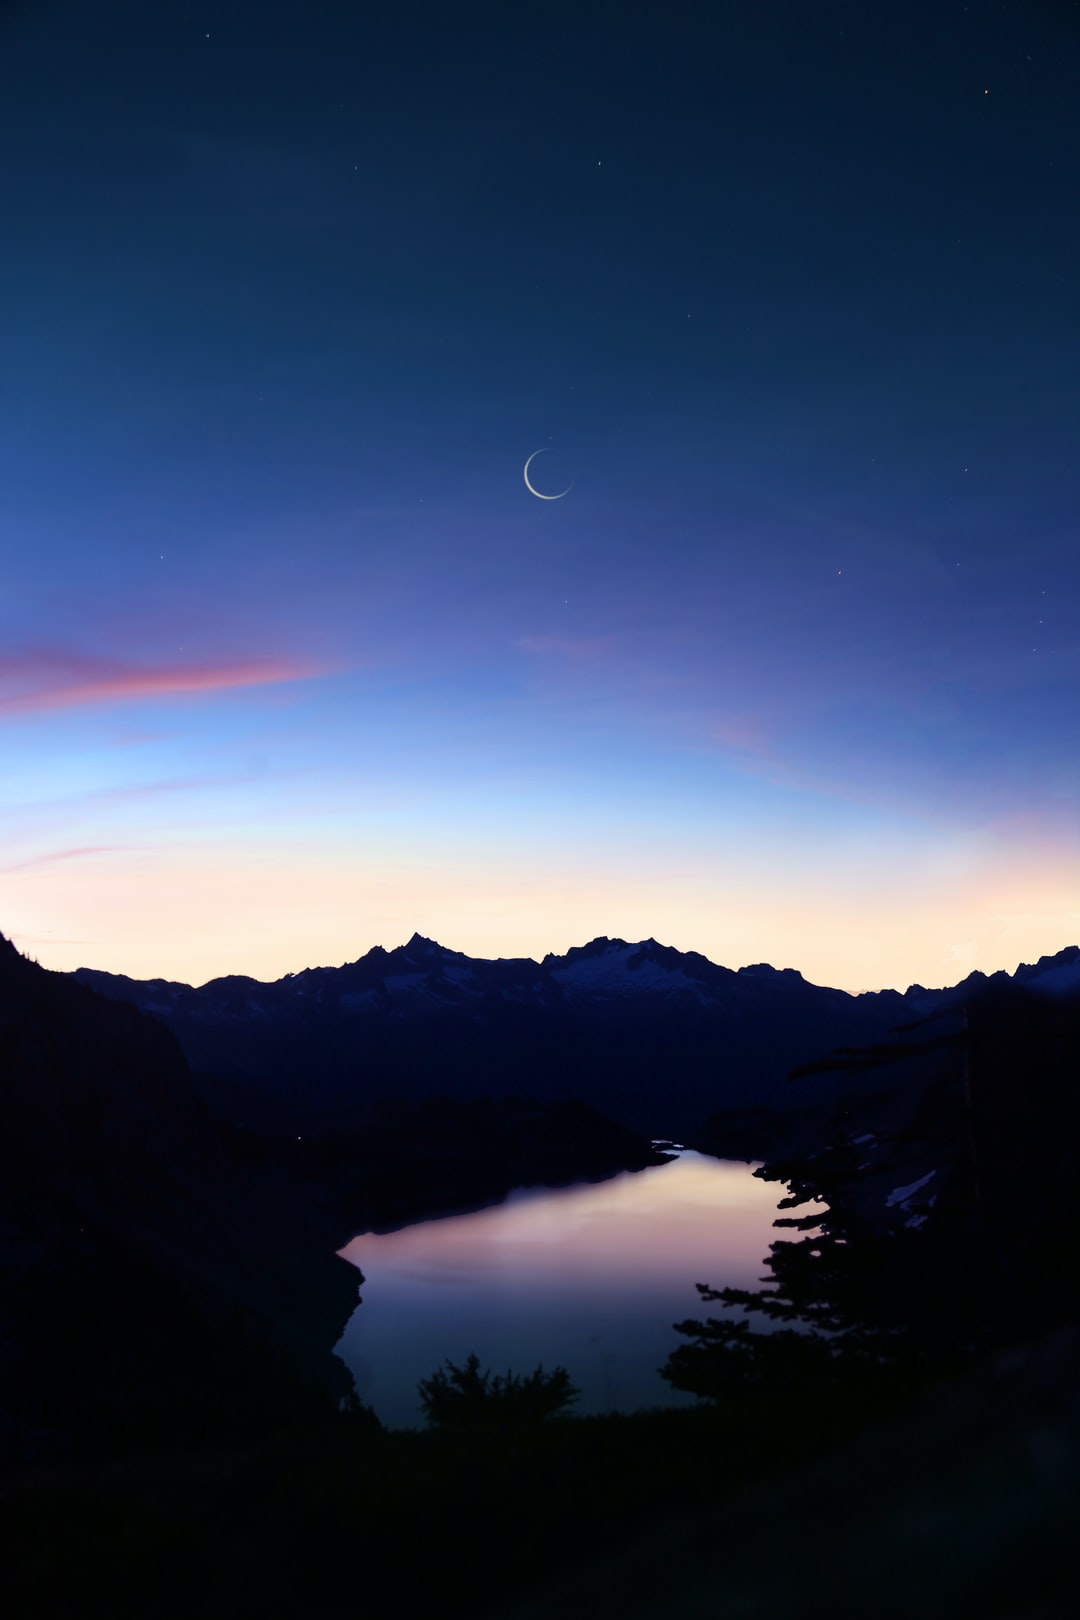 birds eye-view of lake under crescent moon photo u2013 Free Sunset ...